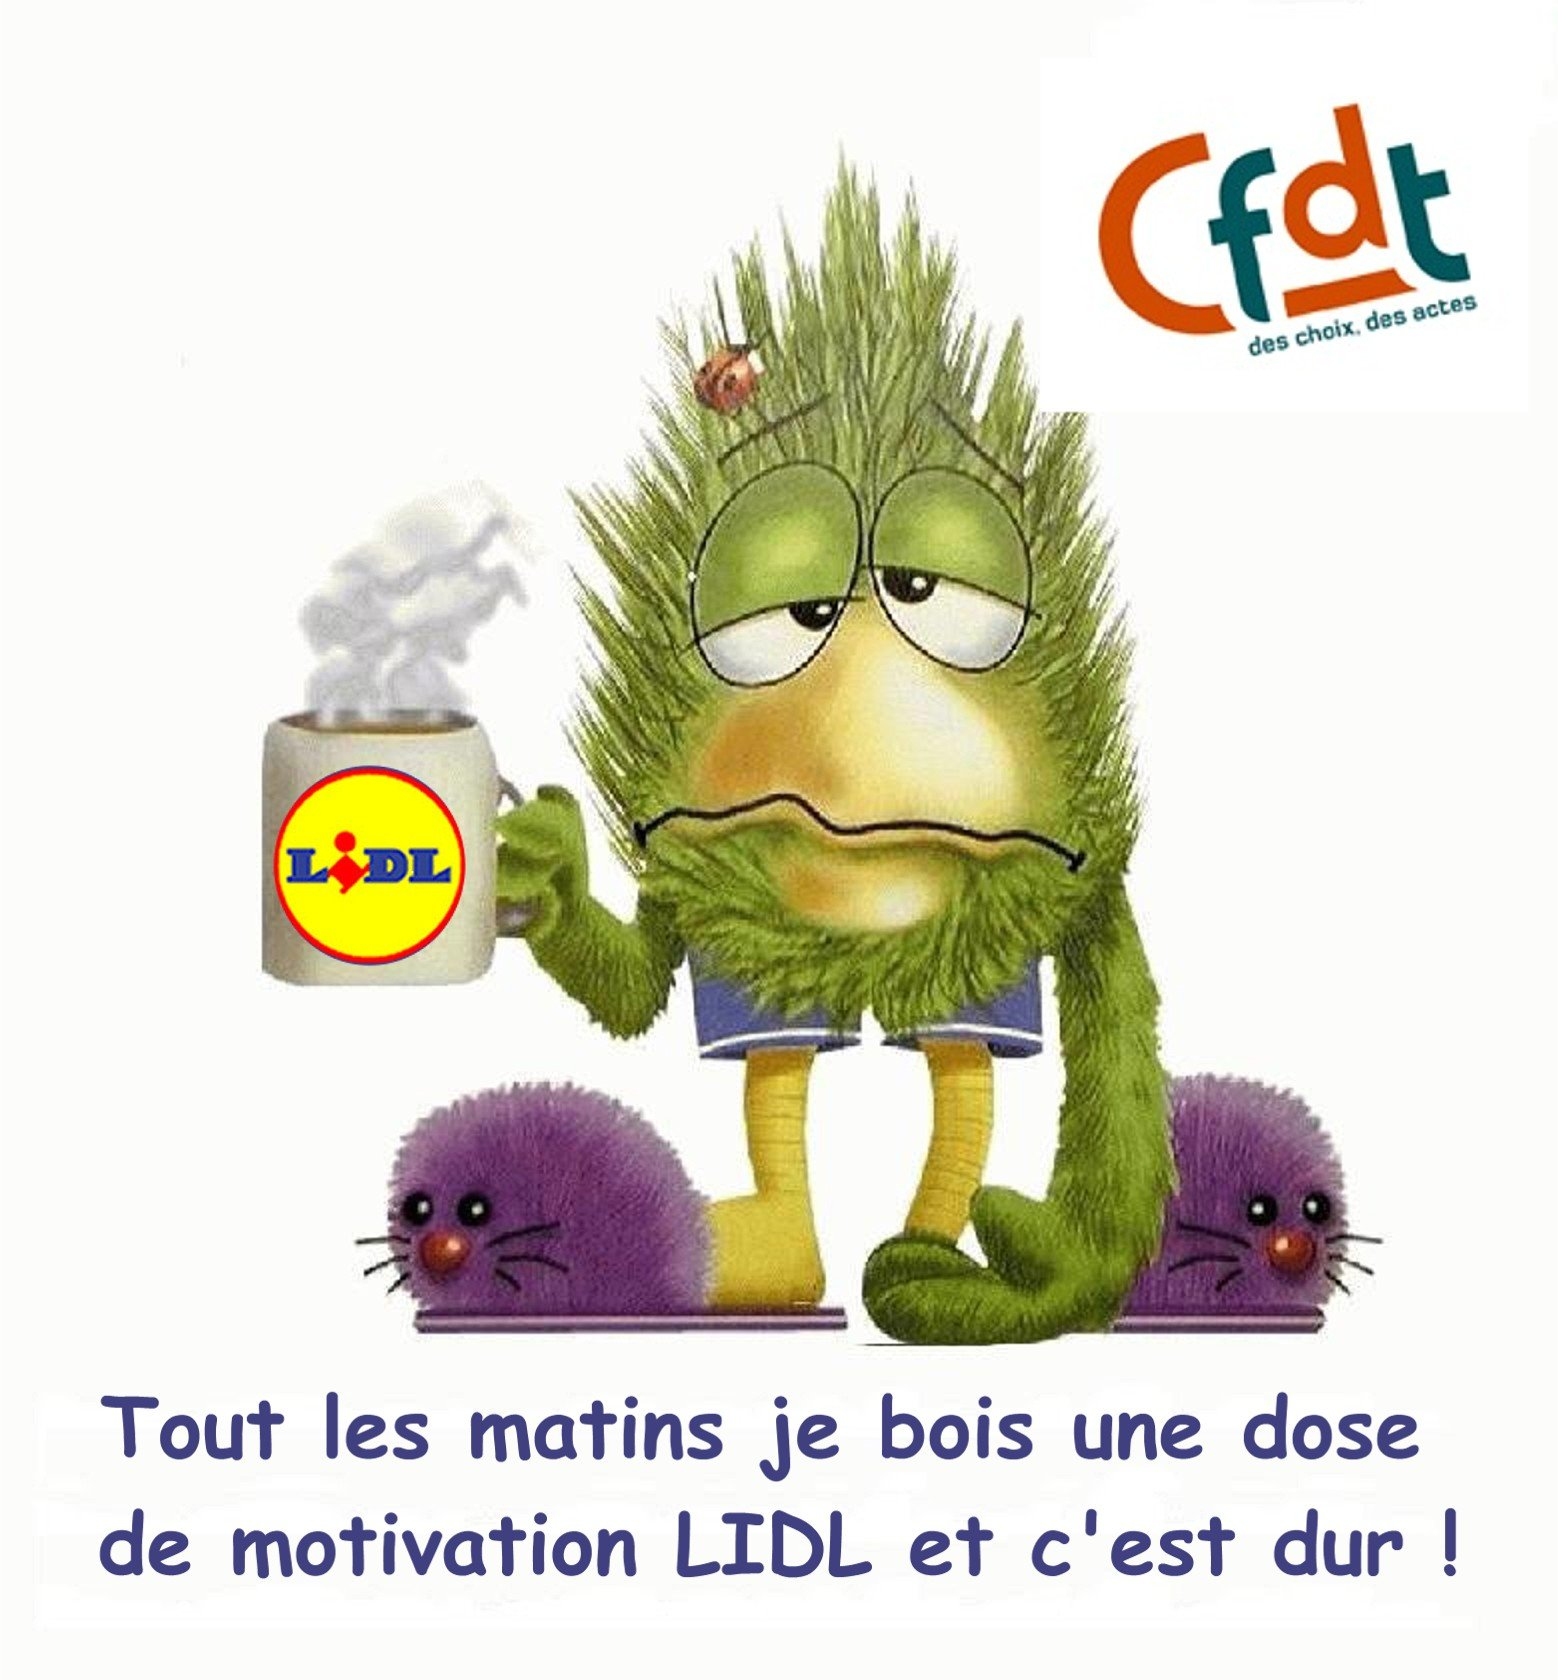 CAT , CGT , CFTC , FO , CGC , UNSA , CFDT les syndicats chez Lidl motivationlidl